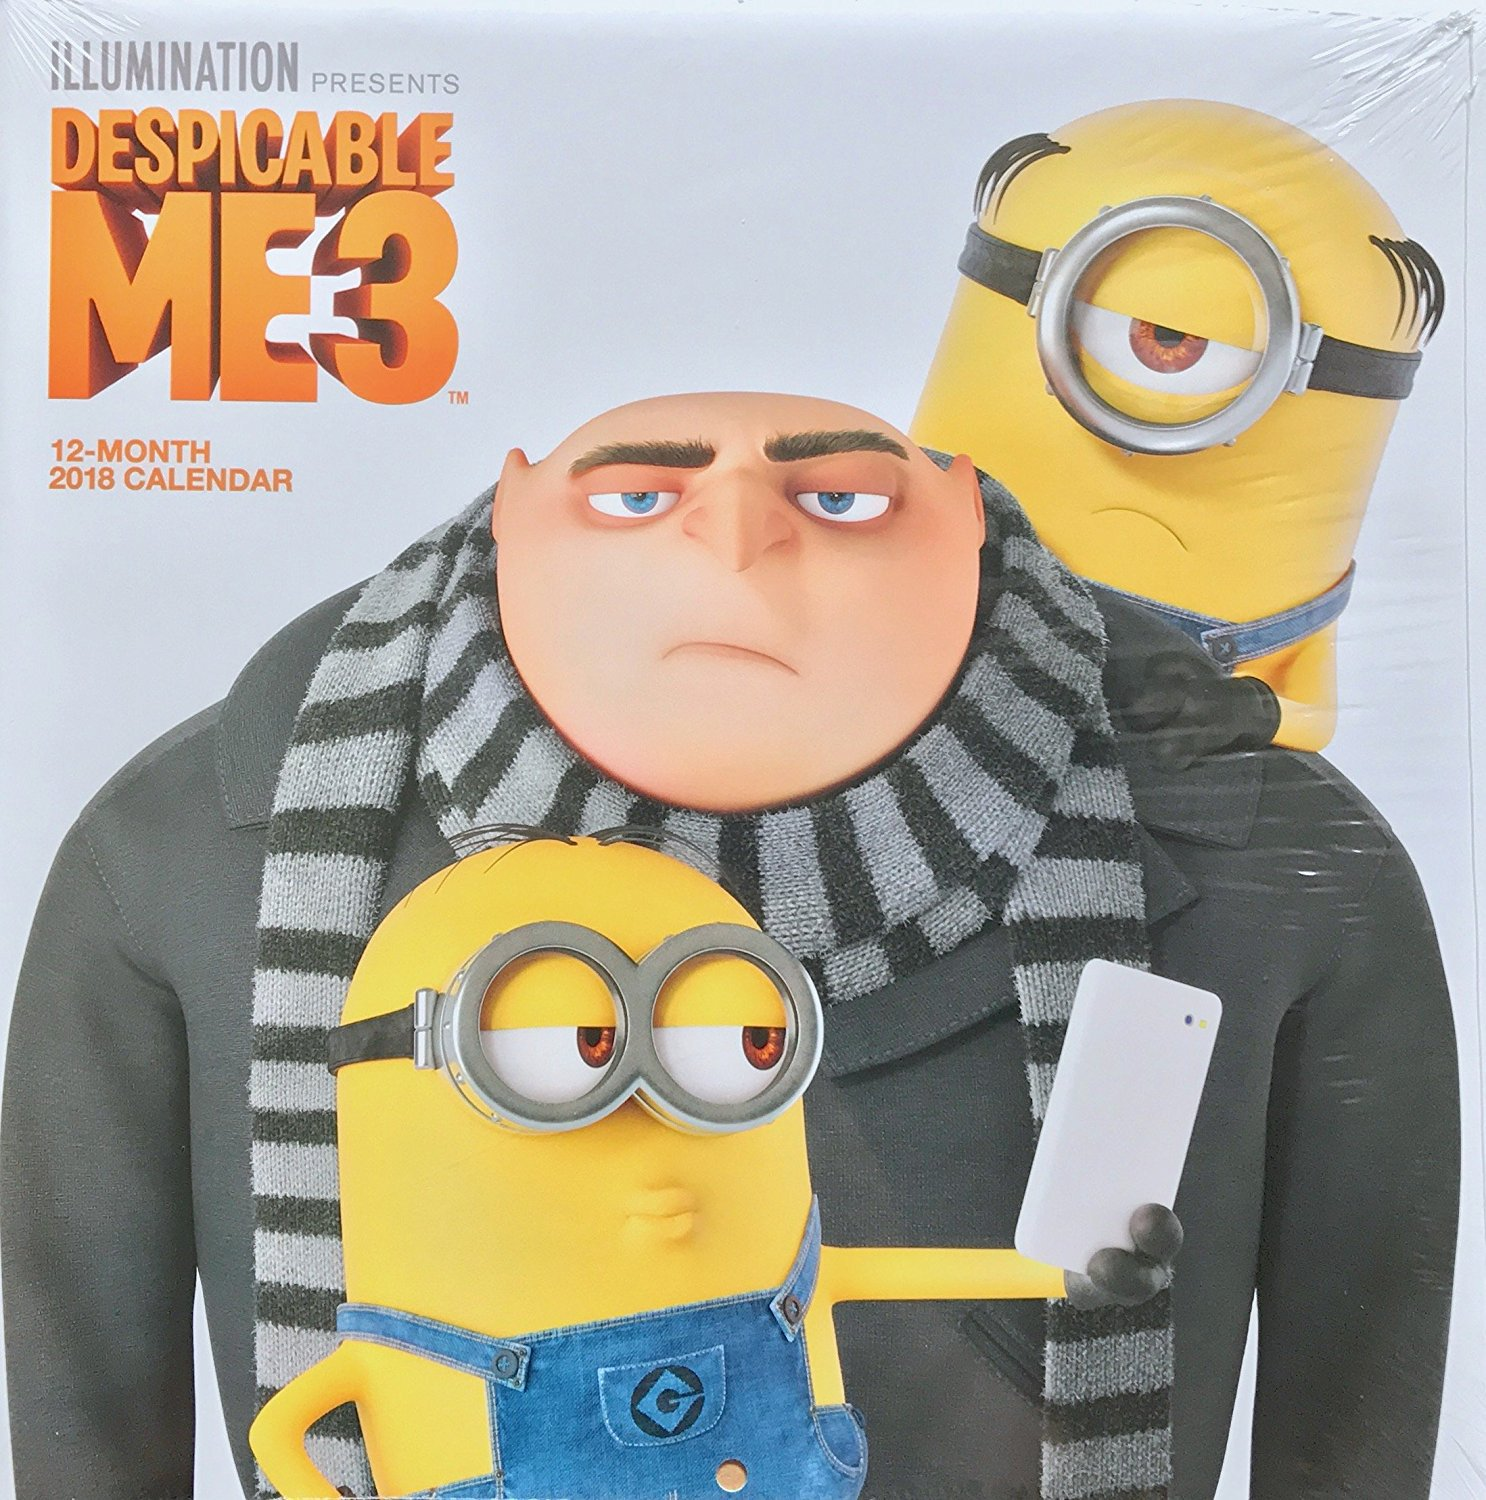 Despicable Me Minions 3 2018 Calendar Kids Room Decor